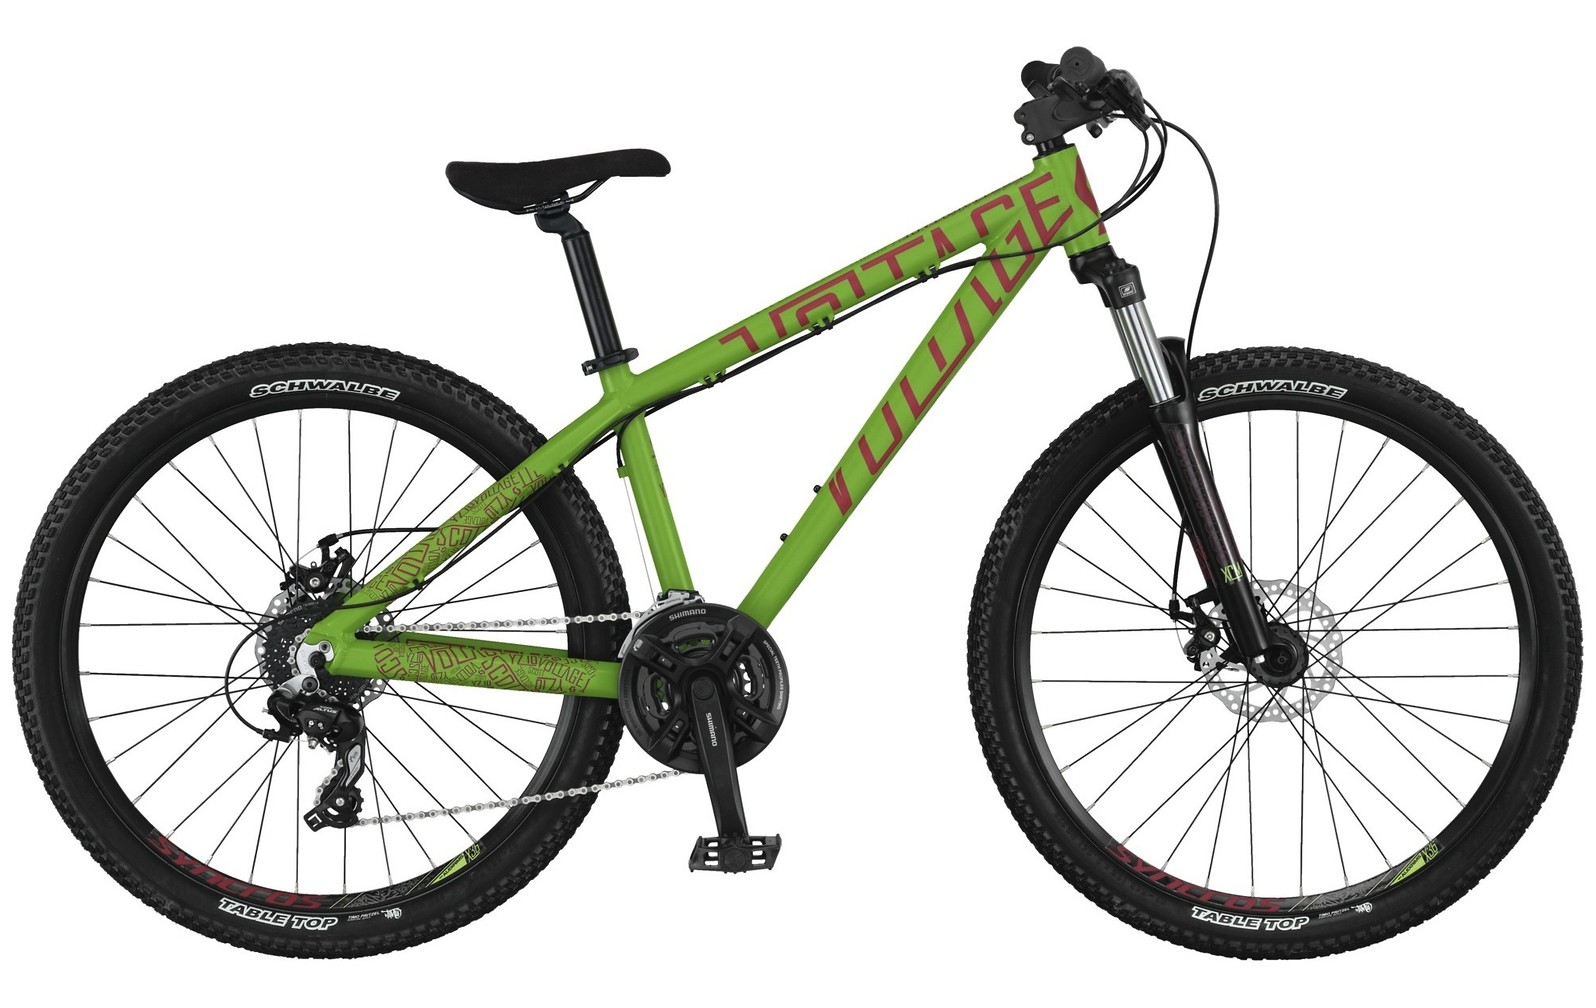 2014 Scott Voltage Yz 30 Bike Reviews Comparisons